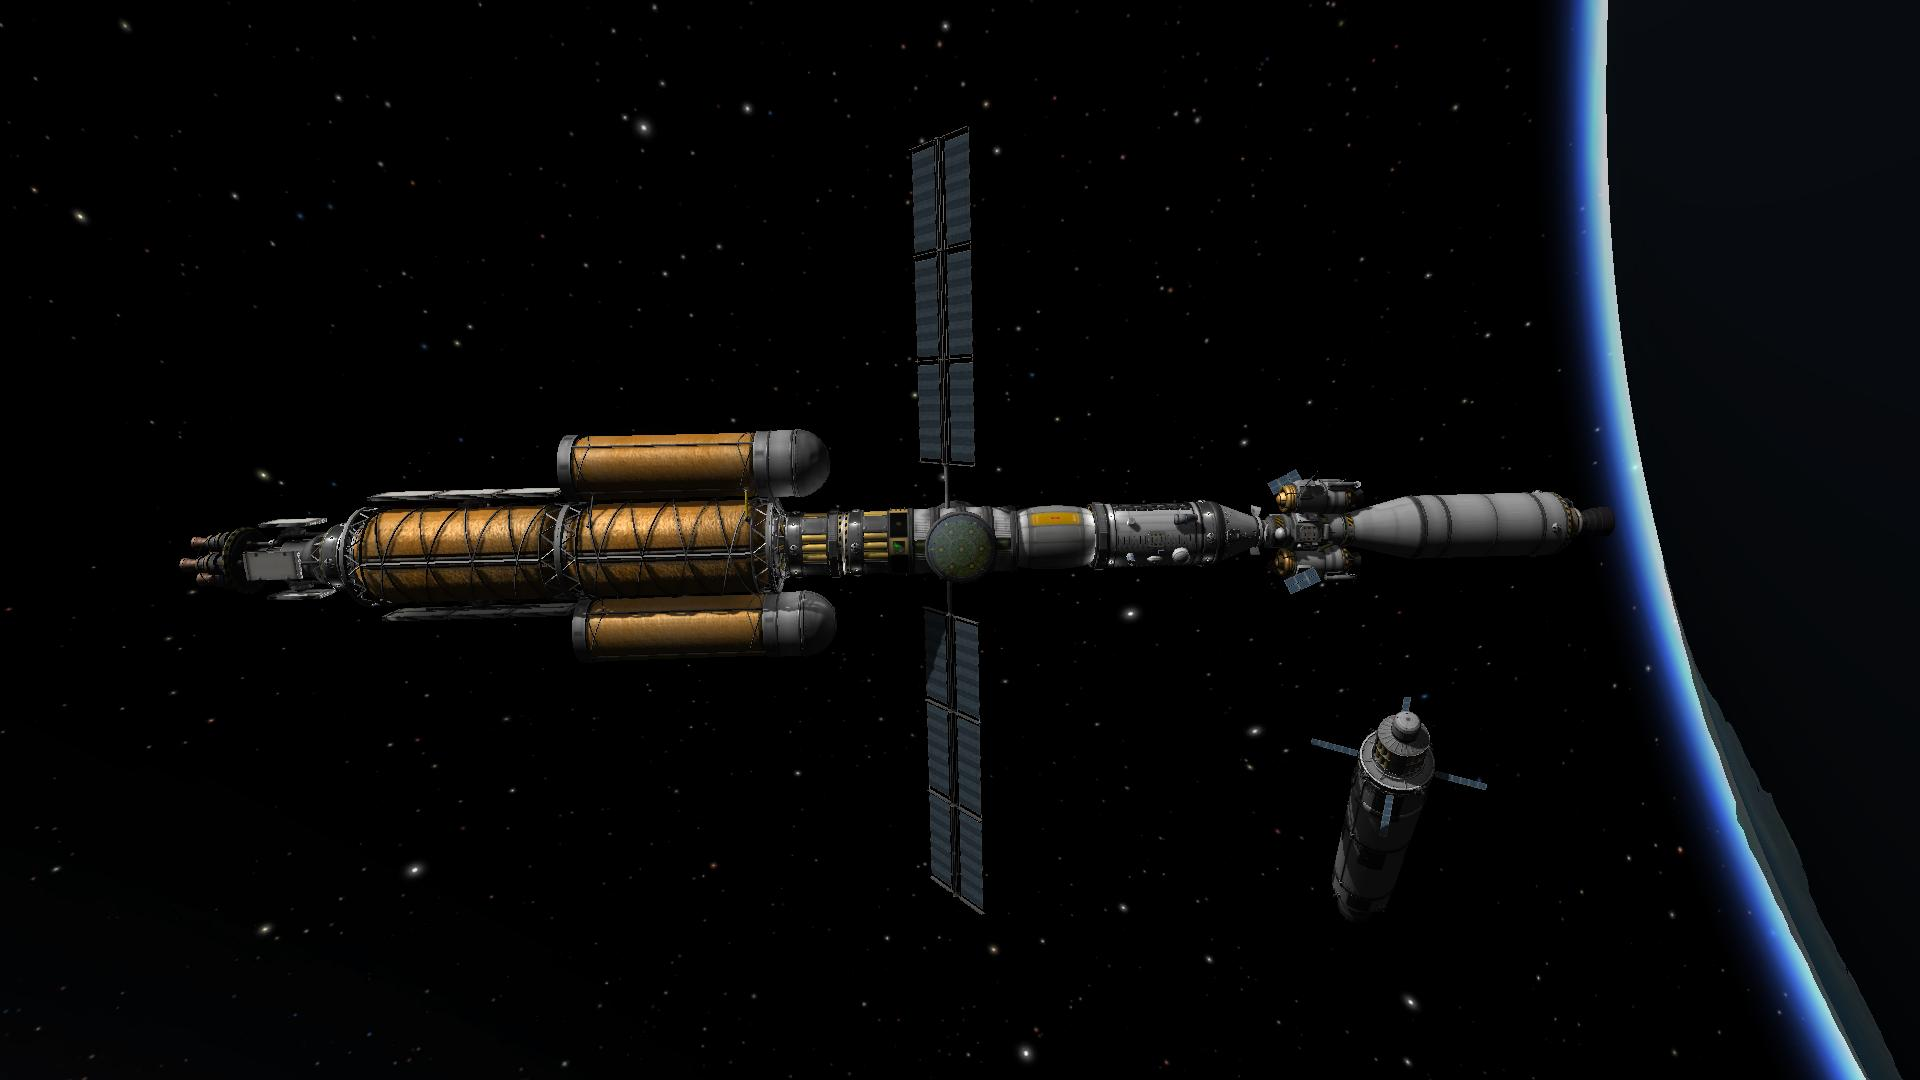 Kerbol Explorer 1 - Ready for Jool